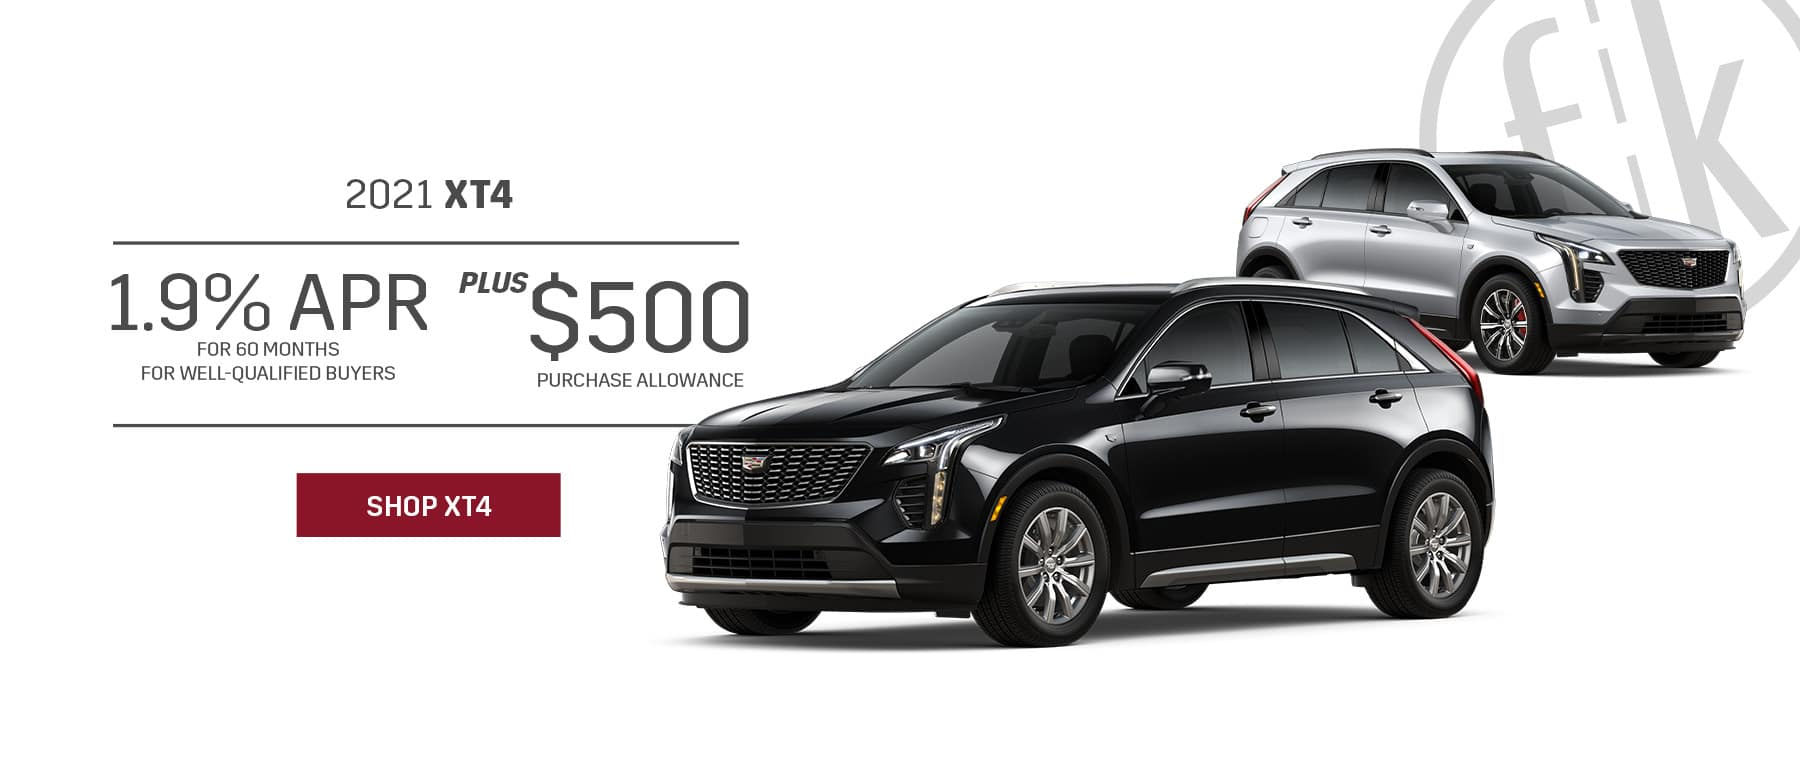 2021 XT4 1.9% for 60 mos PLUS $500 Purchase Allowance